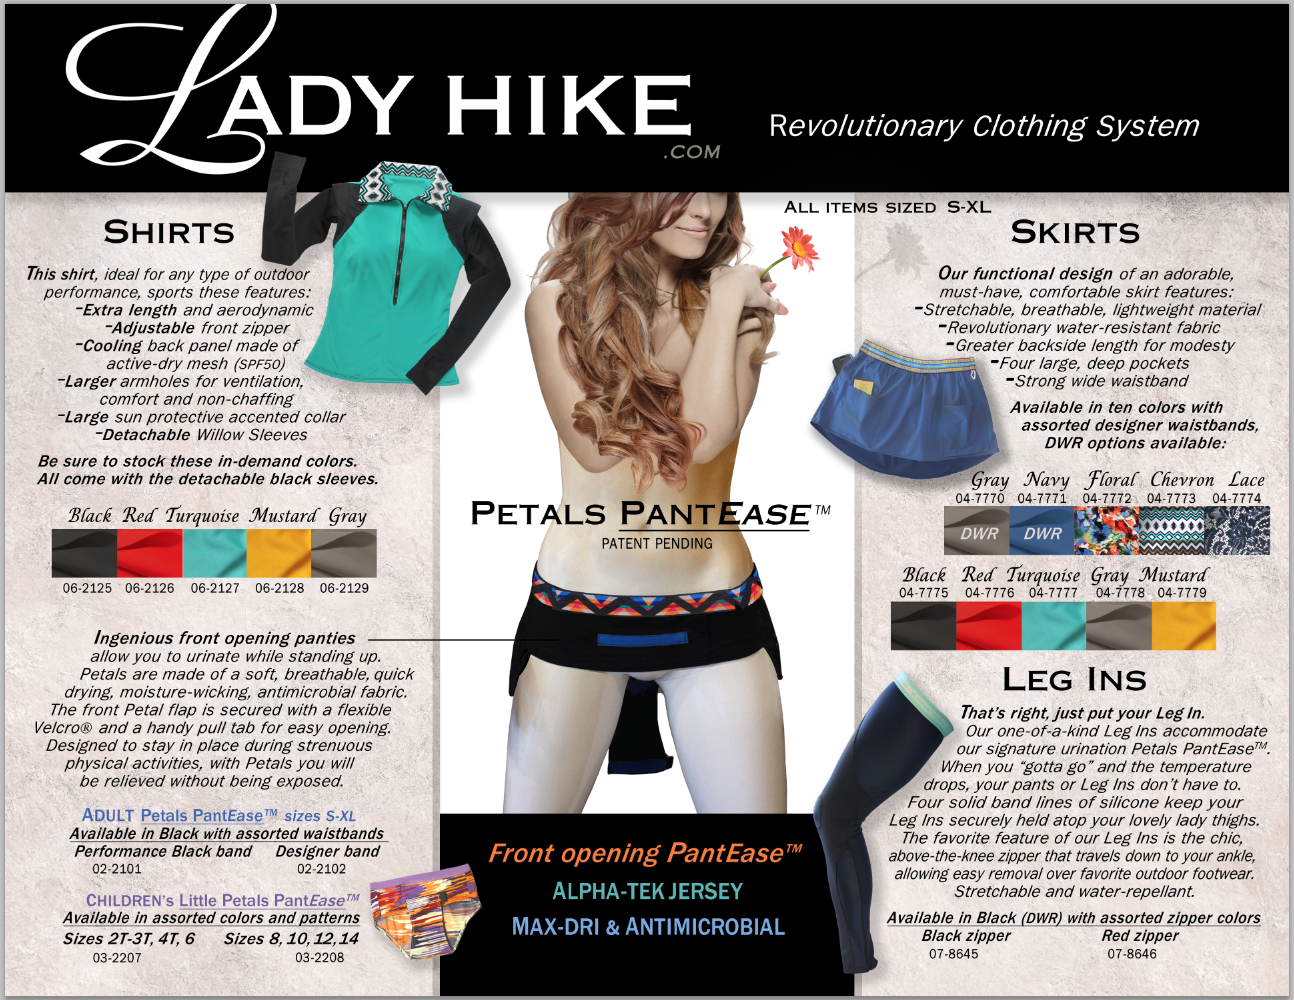 Look for Lady Hike Products in stores Spring 2017.